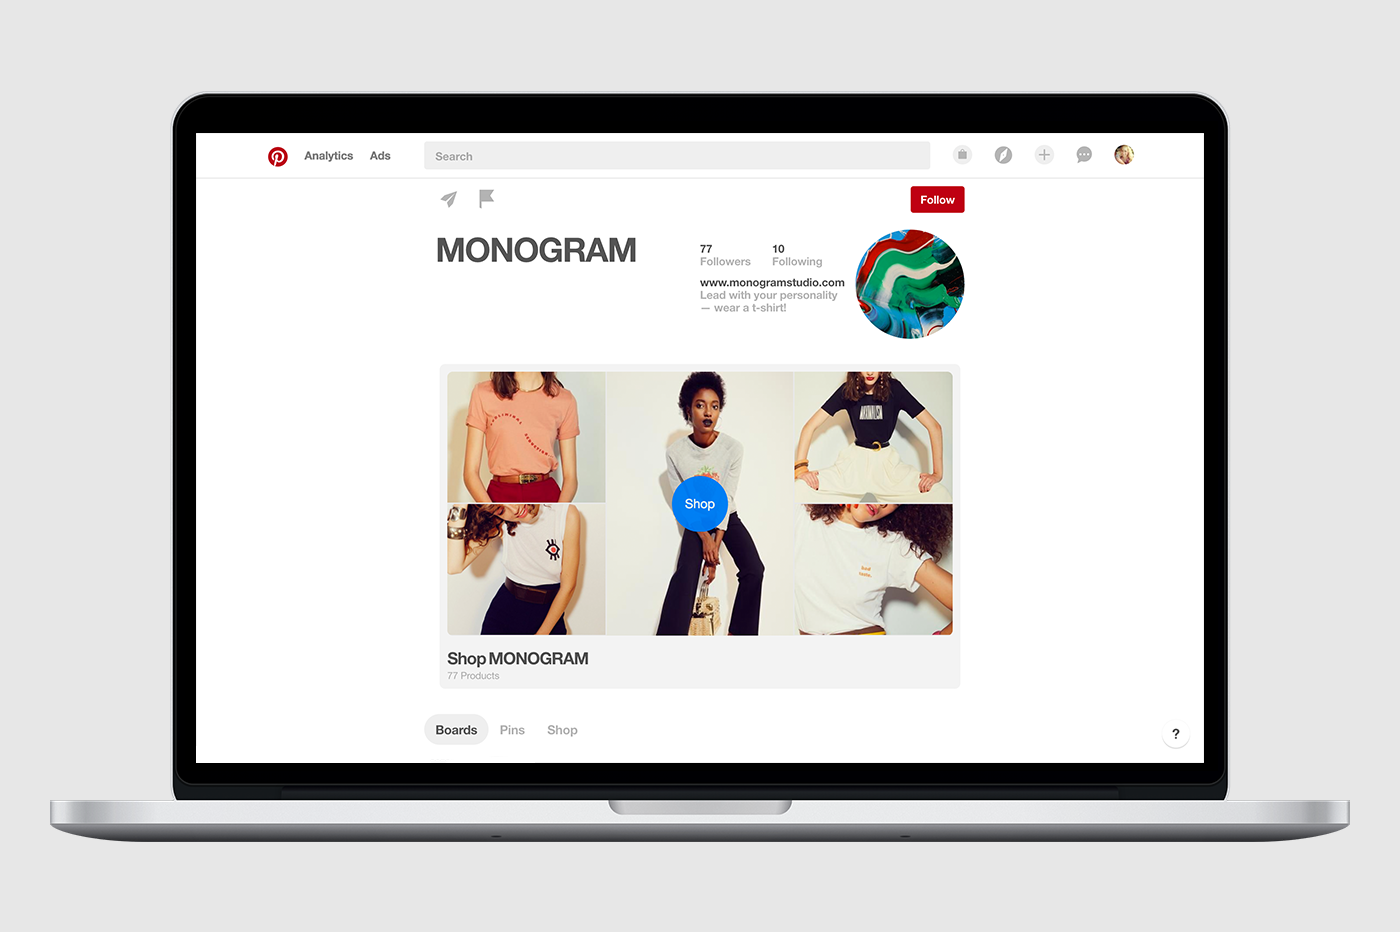 Pinterest's New Showcase